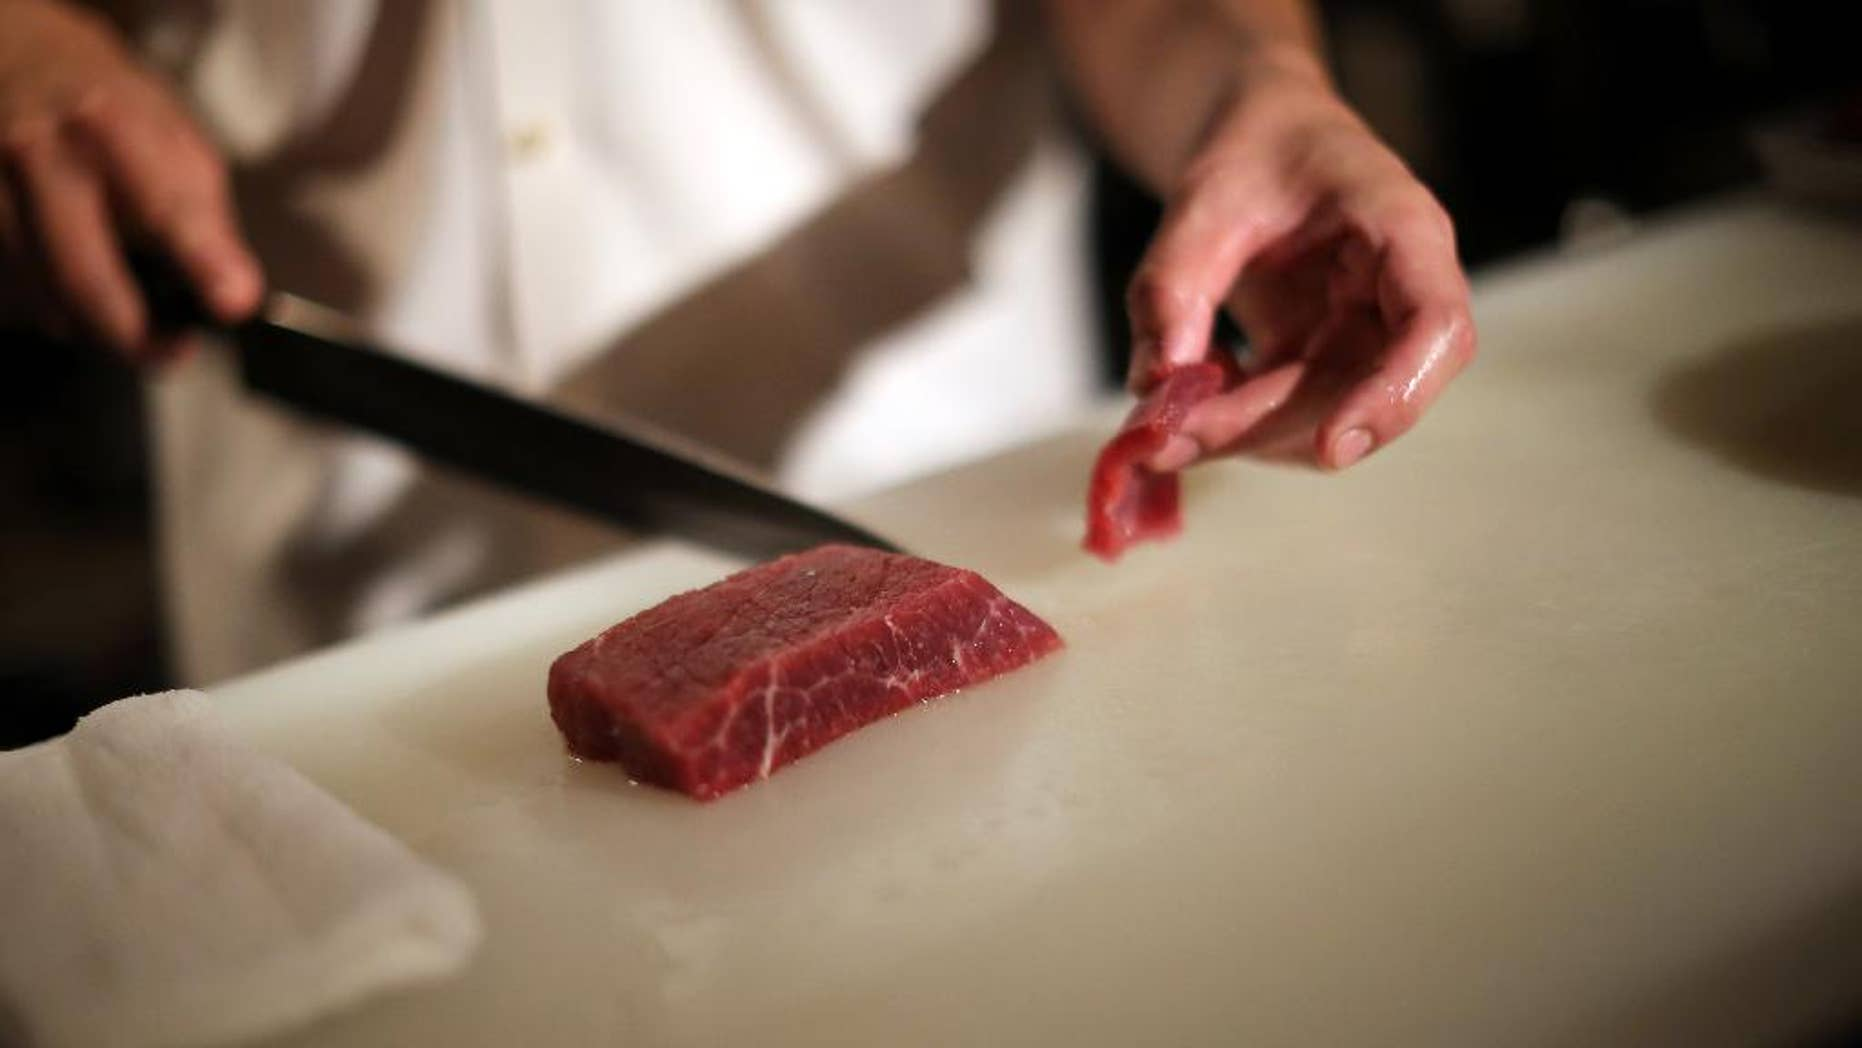 """In this Sept. 11, 2014 photo, chef of the Japanese restaurant """"COM FOR TABLE"""" slices whale meat for a dish in in Tokyo. Whale meat continues to be one of the favorite dishes in this restaurant, but restaurant manager concerns about the future of its supply. At the International Whaling Commission meeting in Slovenia which opens Monday, Sept. 15, 2014, Japan is expected to seek international support for its plans to hunt minke whales in the Antarctic Ocean next year by scaling down the whaling research program the U.N. top court rejected earlier this year. The restaurant manager is hoping that supply will continue to sustain the demand for whale meat which has been a staple for the Japanese for such a long time. (AP Photo/Eugene Hoshiko)"""